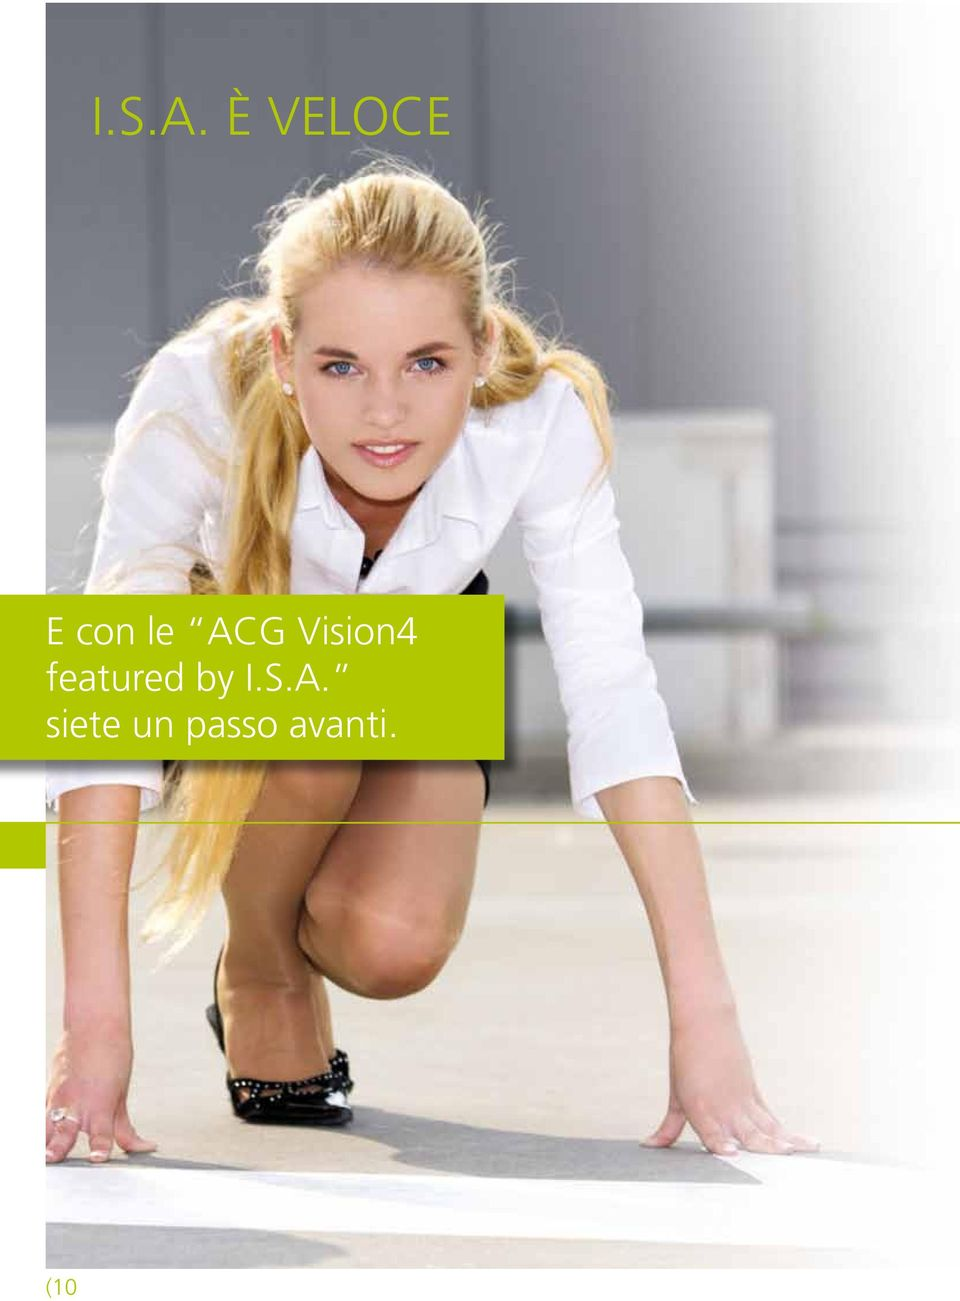 ACG Vision4 featured